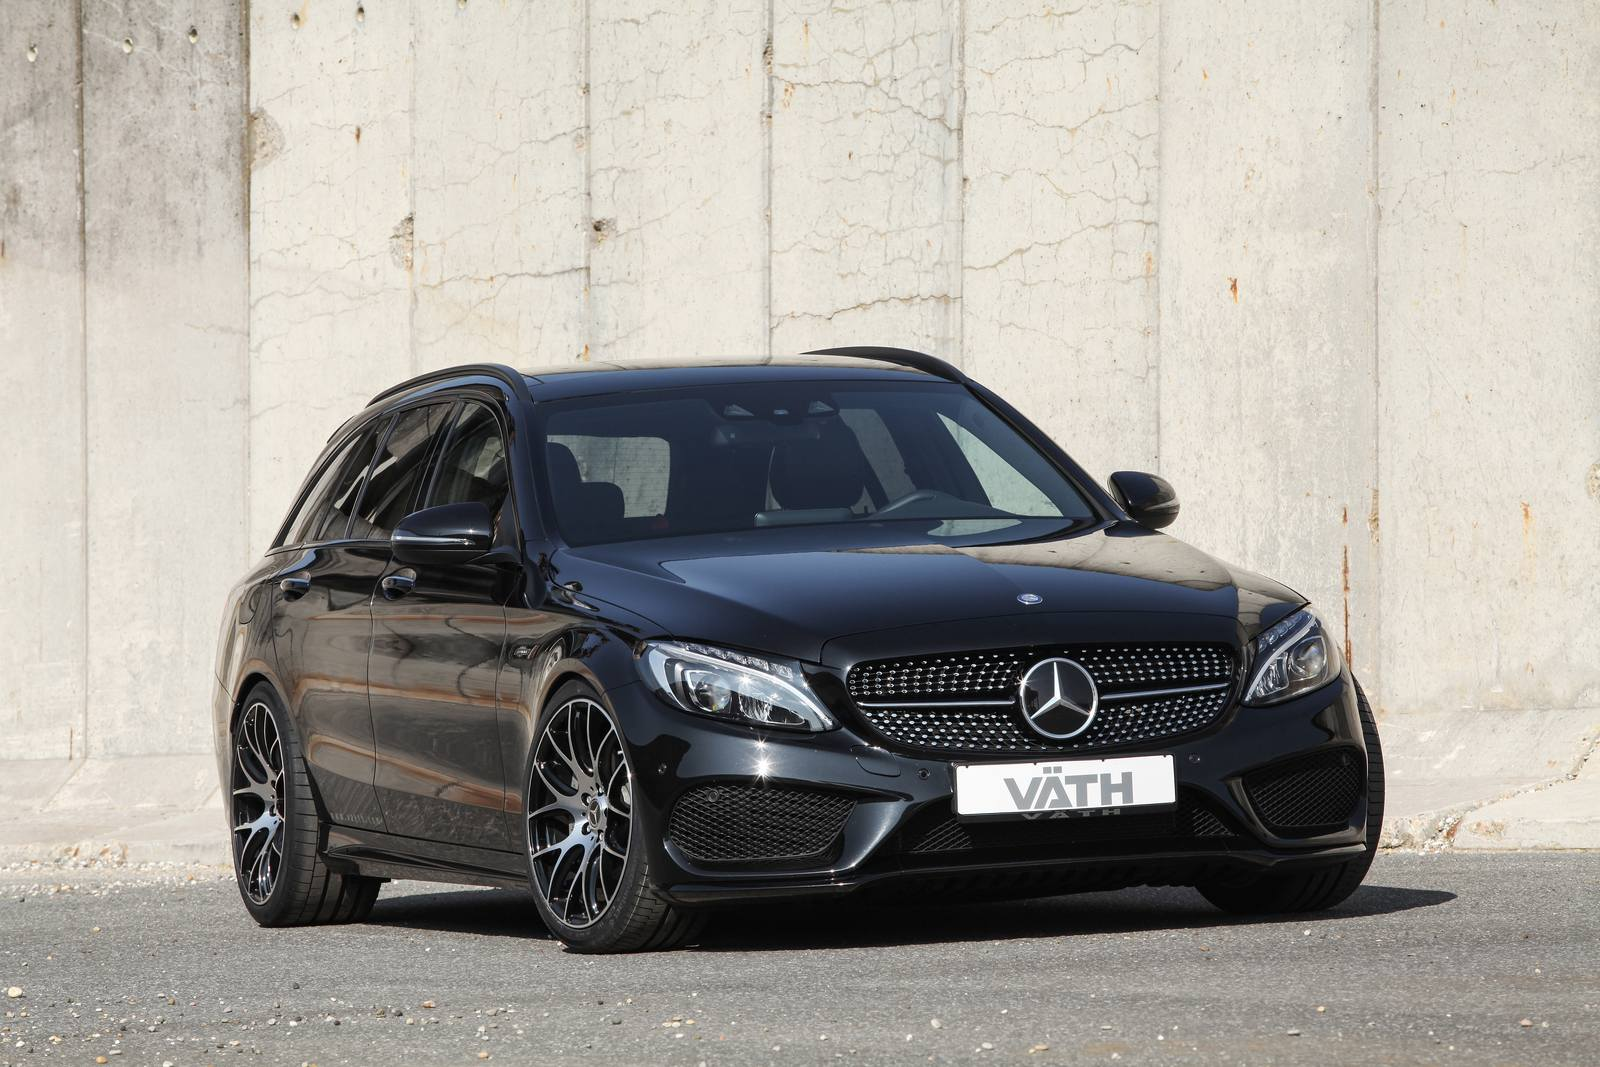 official vath mercedes benz c450 amg sport gtspirit